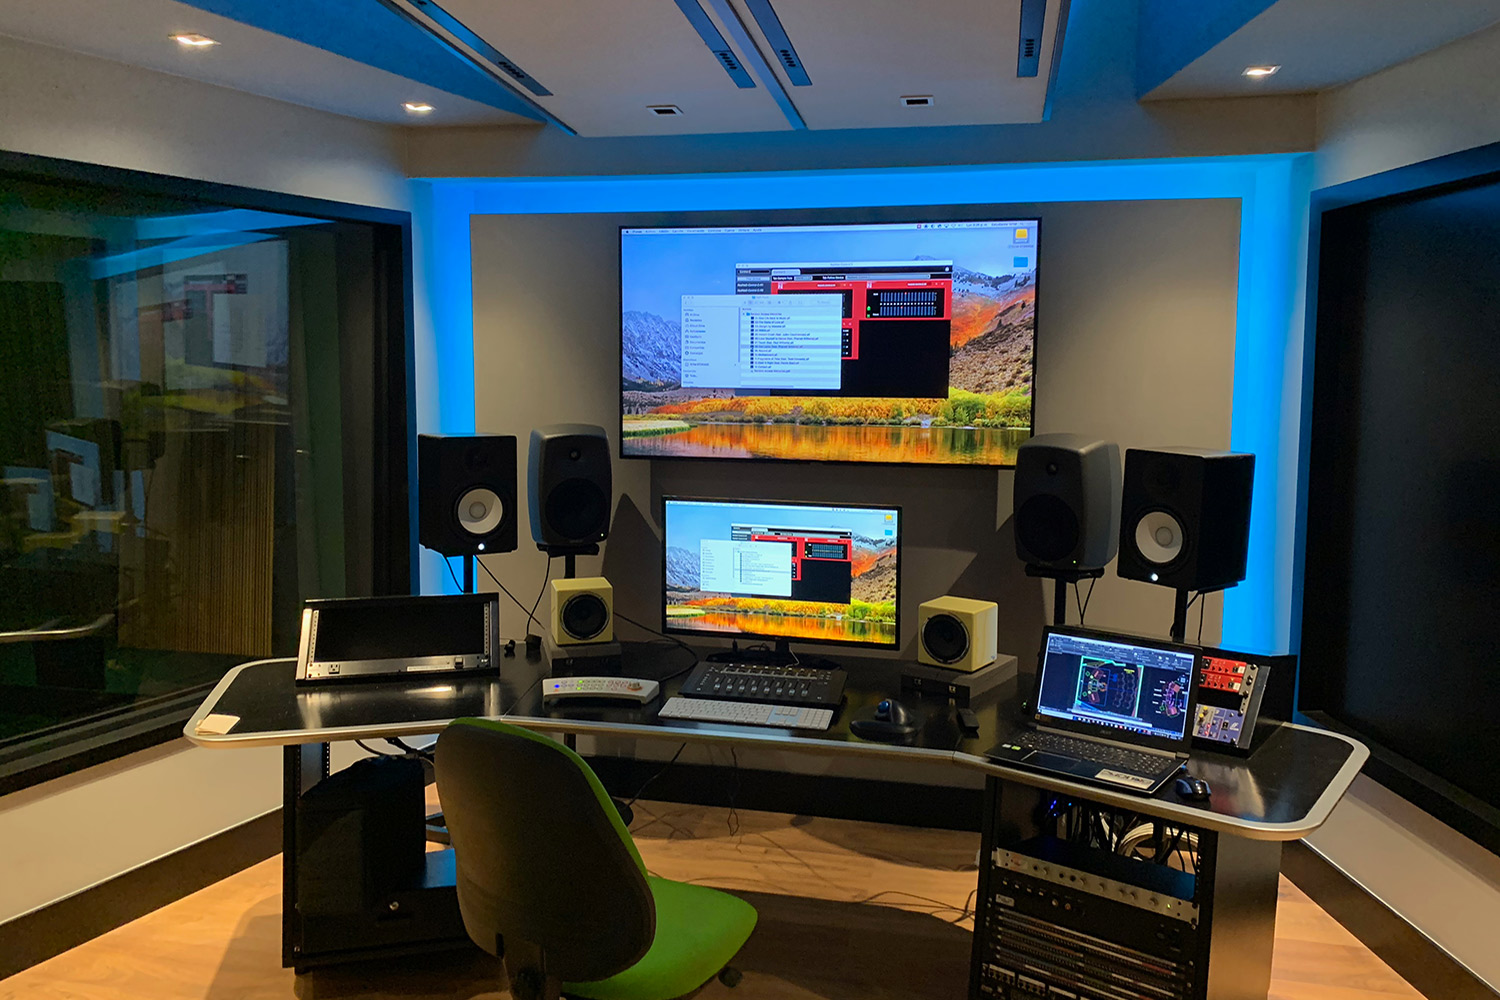 Universidad ICESI in Cali, Colombia commissioned WSDG to design their new music performance, composition and production building with world-class recording studios. Control Room Medios C.